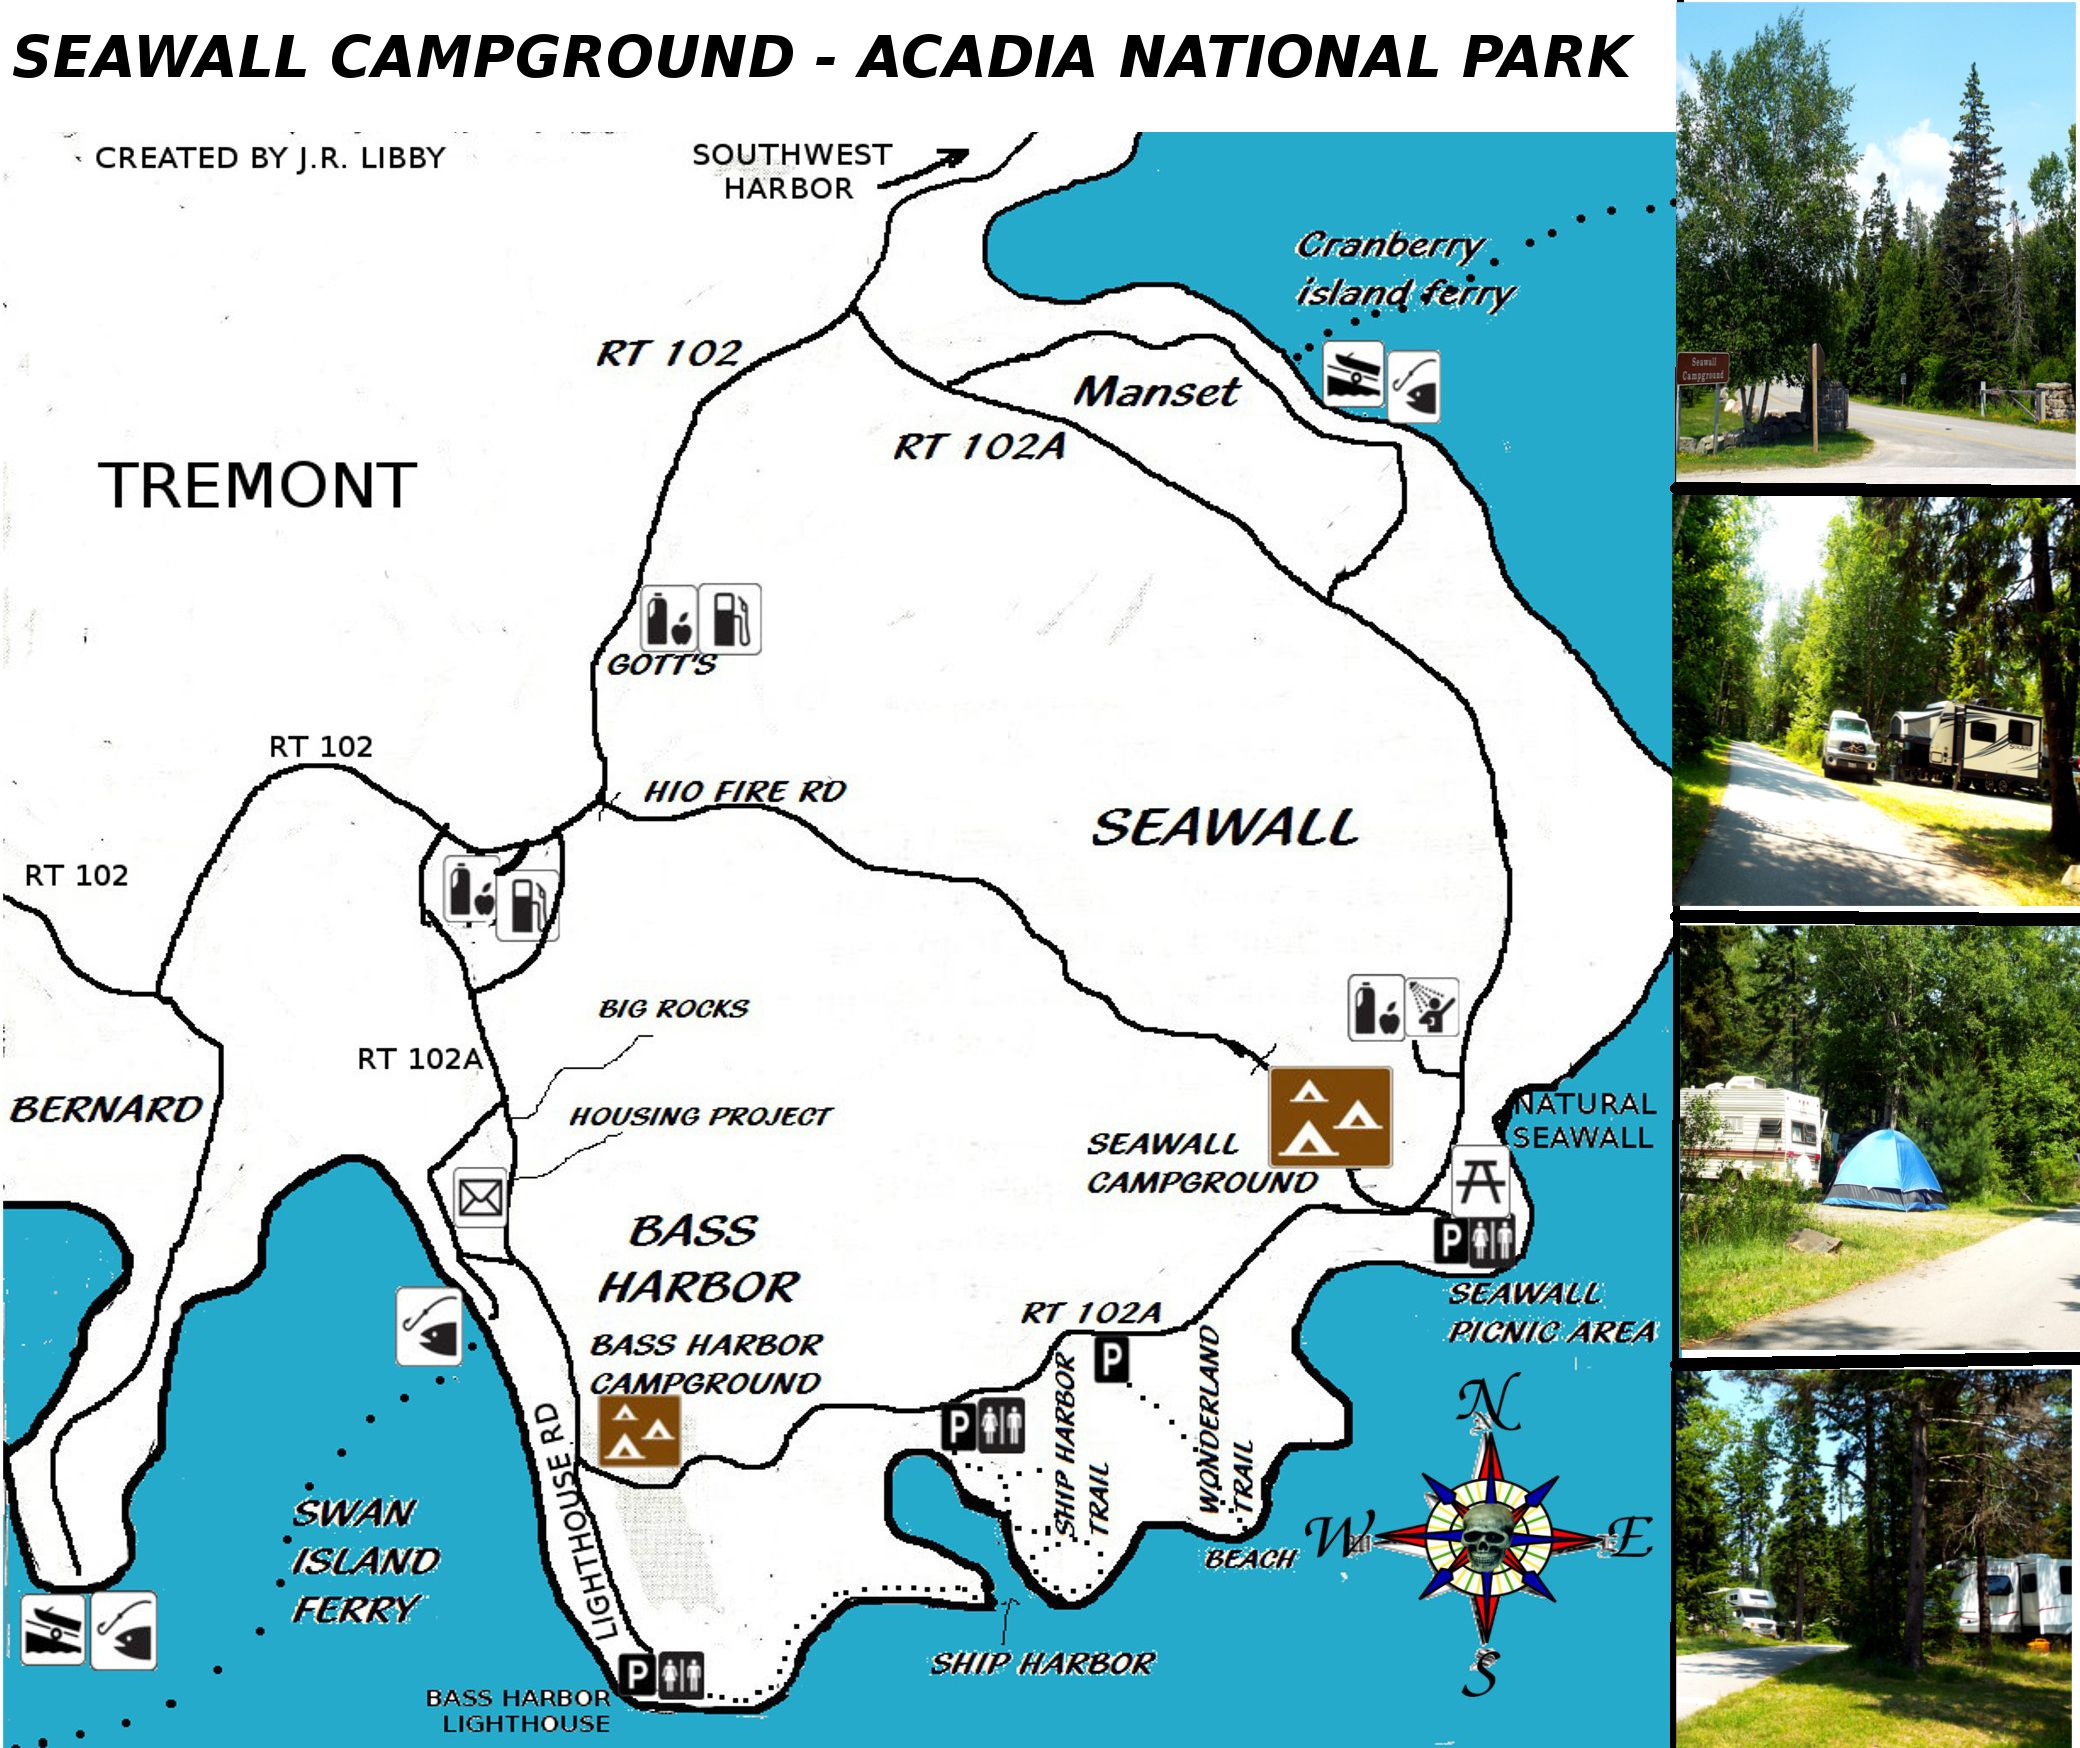 Map of Seawall Campground in Acadia National Park. SEawall ... Map Of Acadia National Park on map of white sands national monument, map of white mountain national forest, map of arctic national wildlife refuge, map of cape lookout national seashore, map of chickasaw national recreation area, map of bar harbor, map of cedar breaks national monument, map of deer isle, map of mount rogers national recreation area, map of el yunque national forest, map of oregon dunes national recreation area, map of cumberland island national seashore, map of southwest harbor, map of great sand dunes national park and preserve, map of independence national historical park, map of gulf islands national seashore, map of rockefeller university, map of sonoran desert national monument, map of indiana dunes national lakeshore, map of denali national park and preserve,